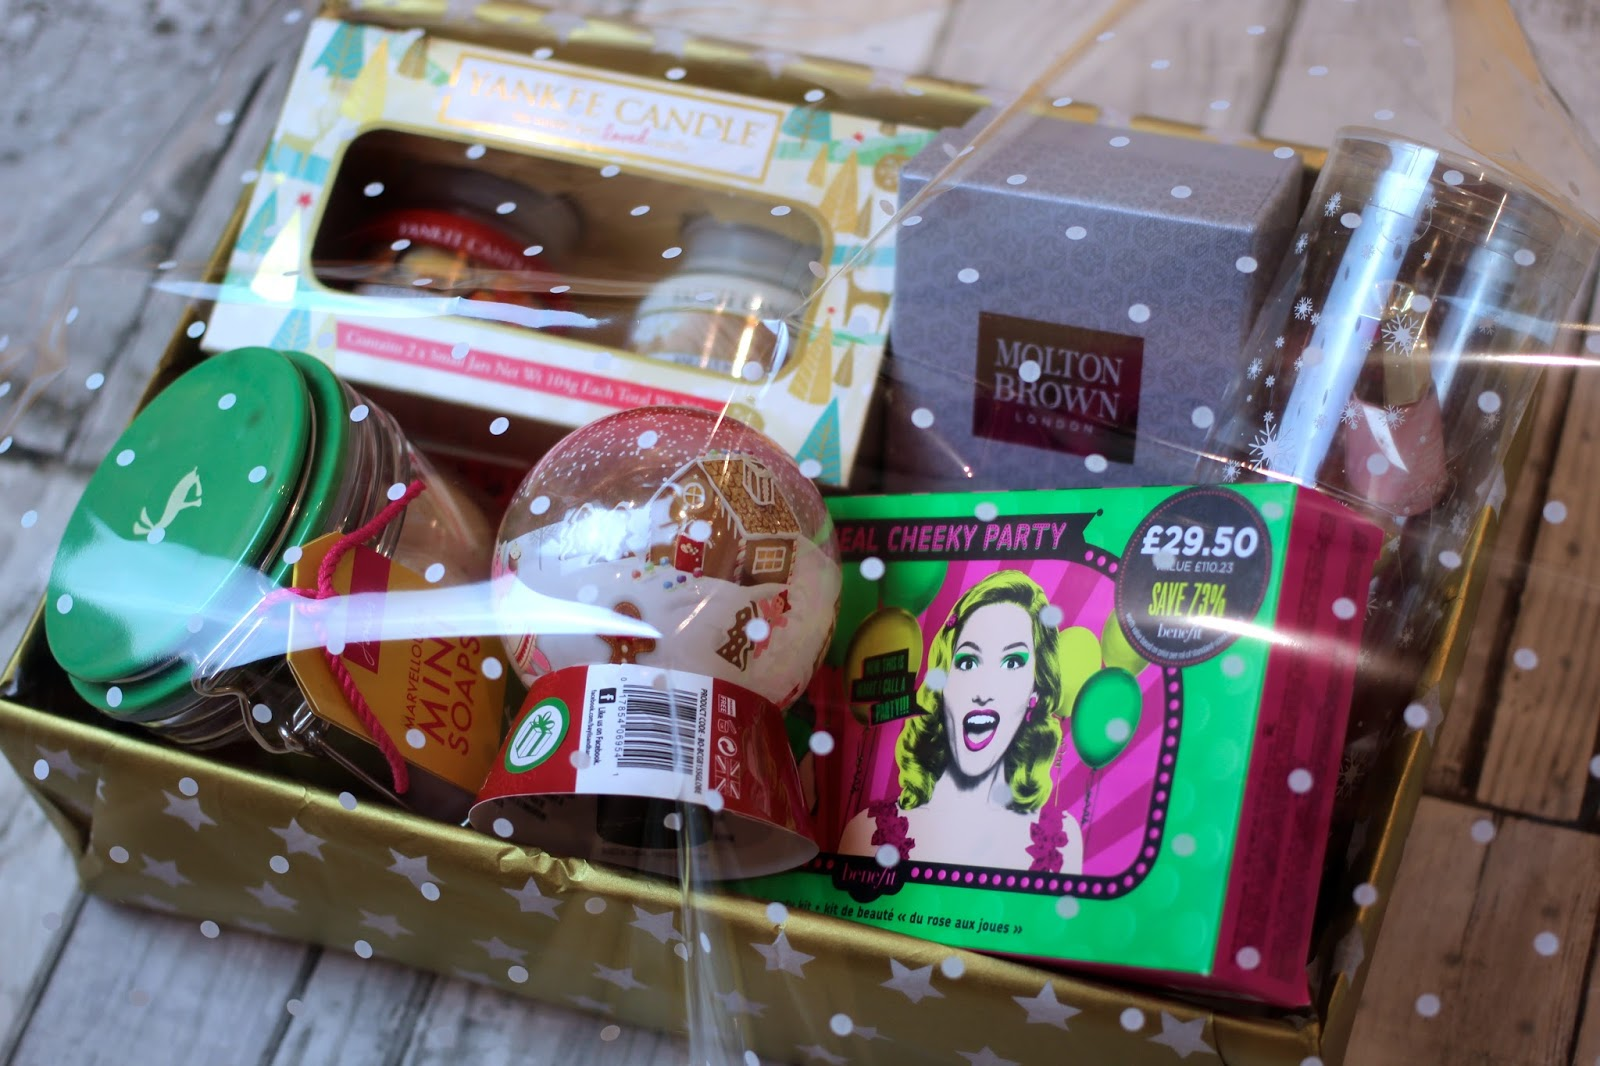 Boots Christmas Beauty Box - Build Your Own - Raining Cake